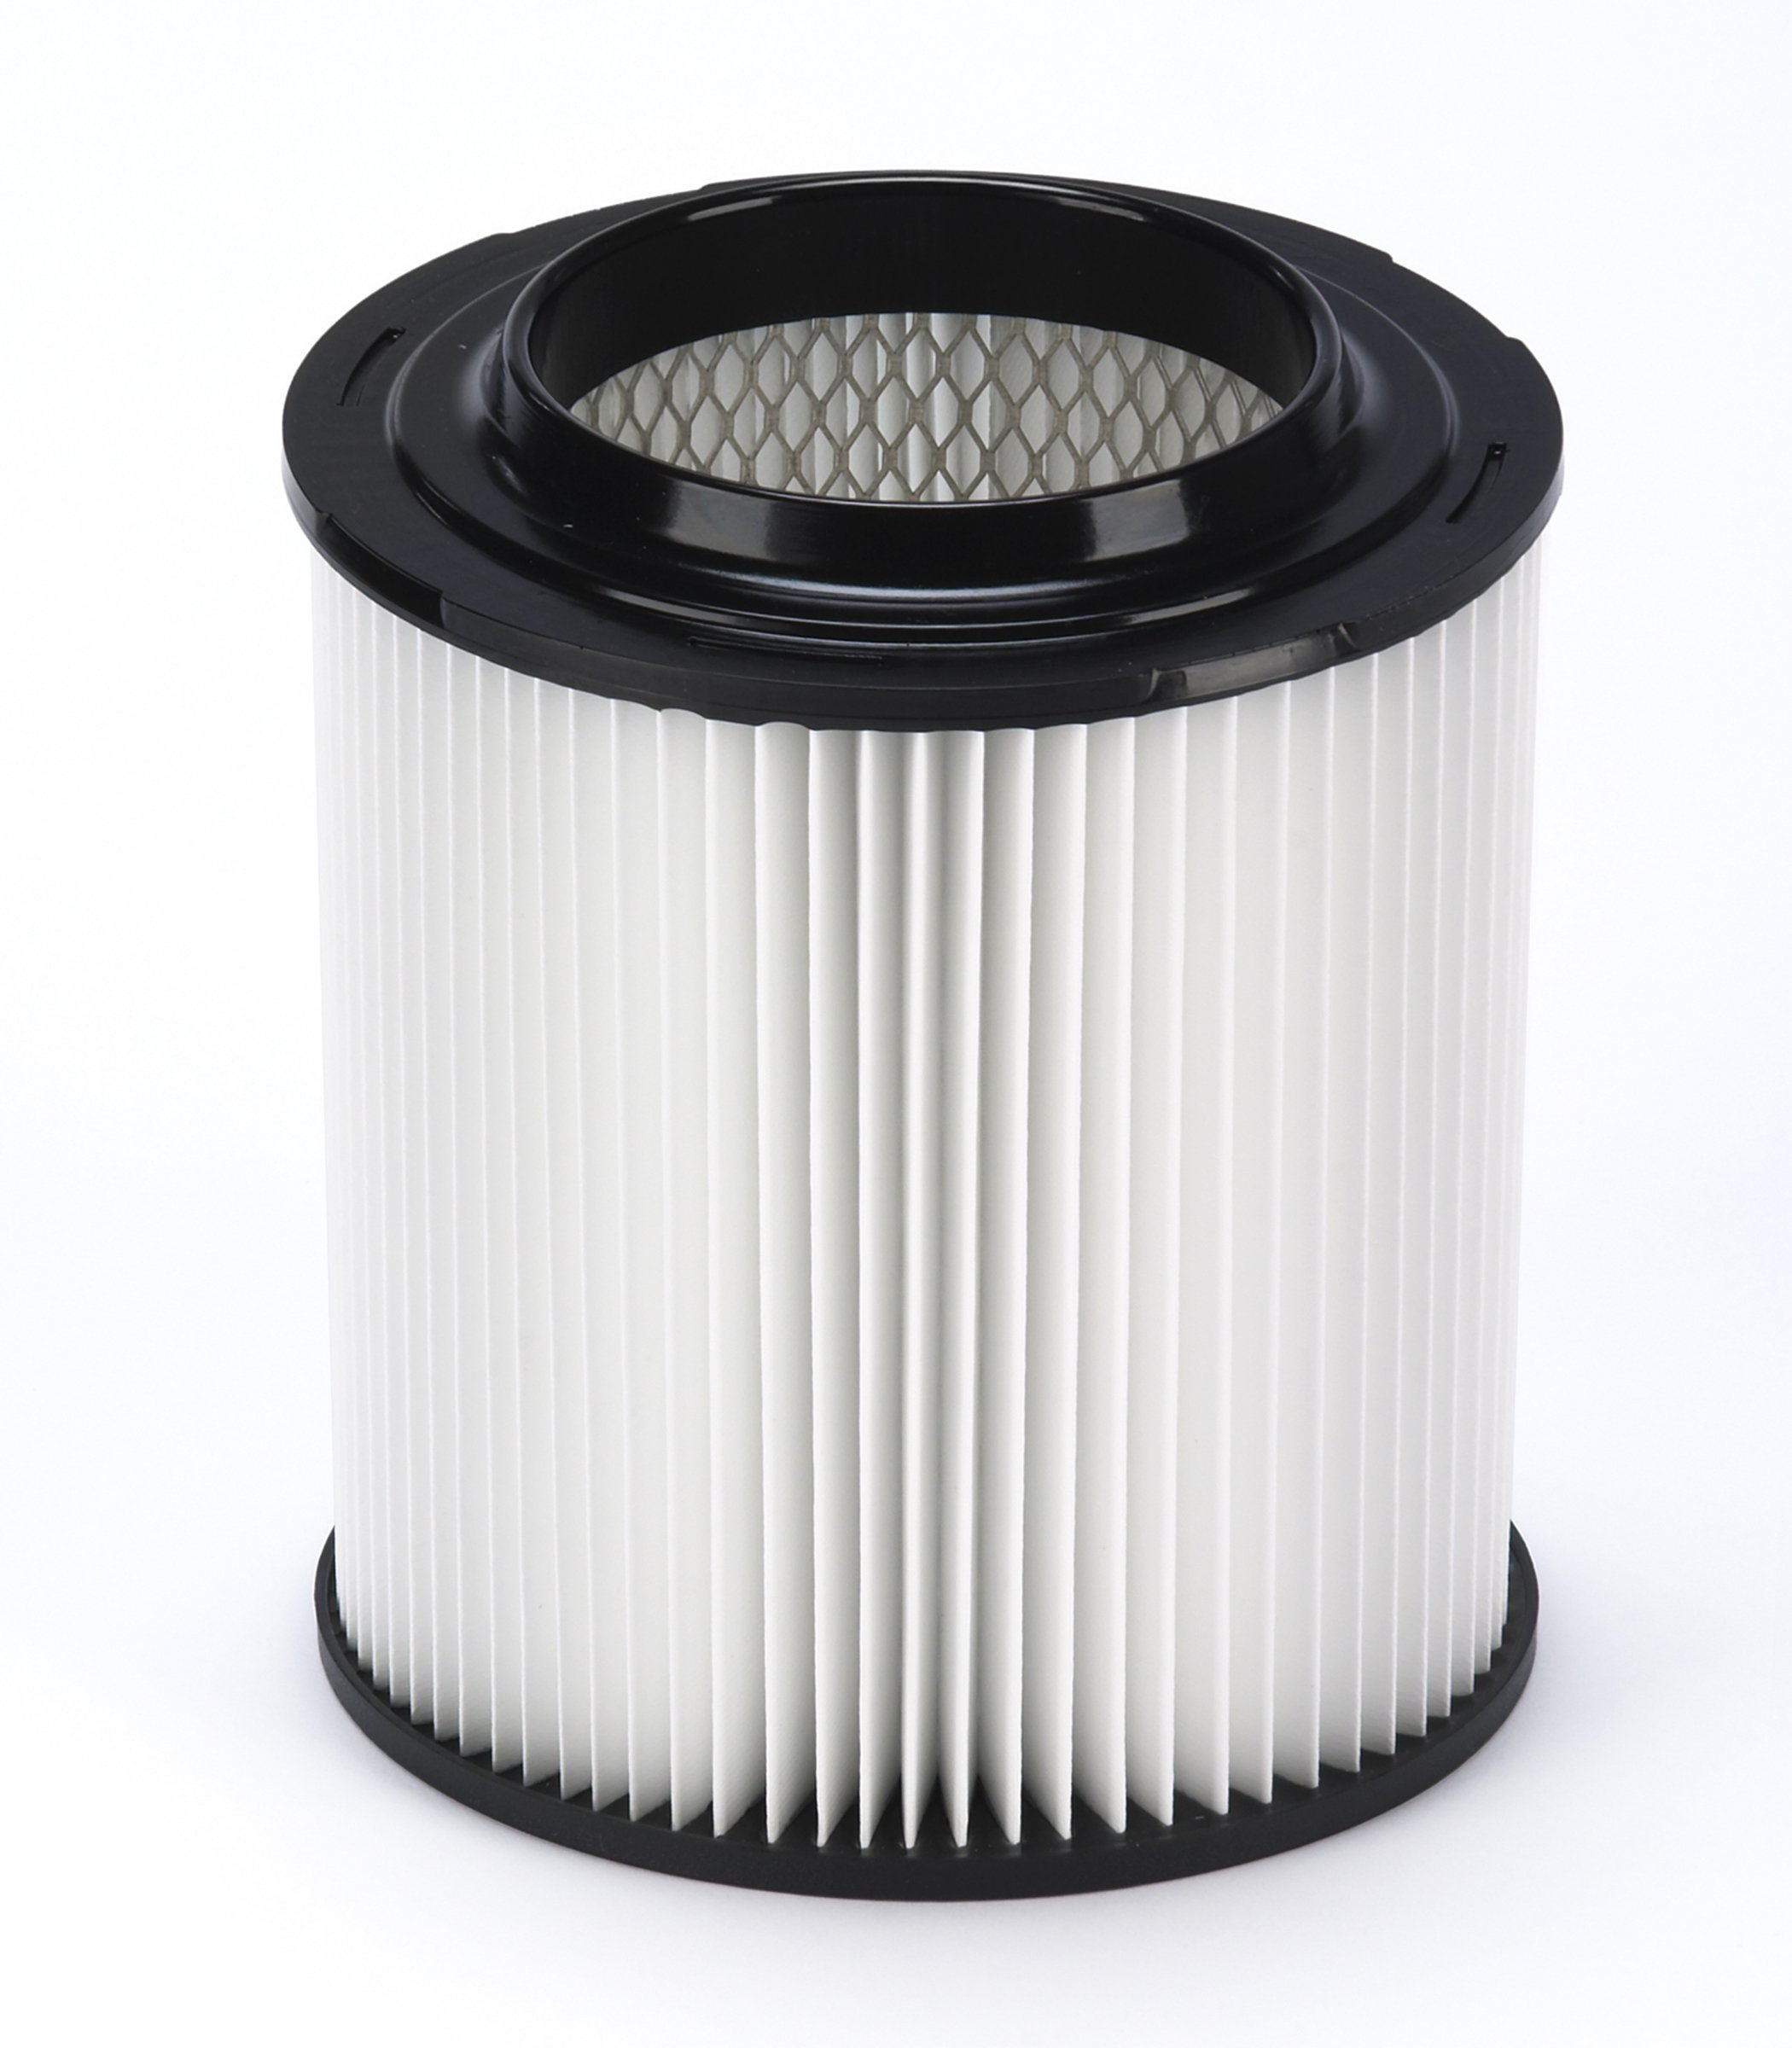 Craftsman Gore Cleanstream Genuine HEPA Cartridge Filter by Gore